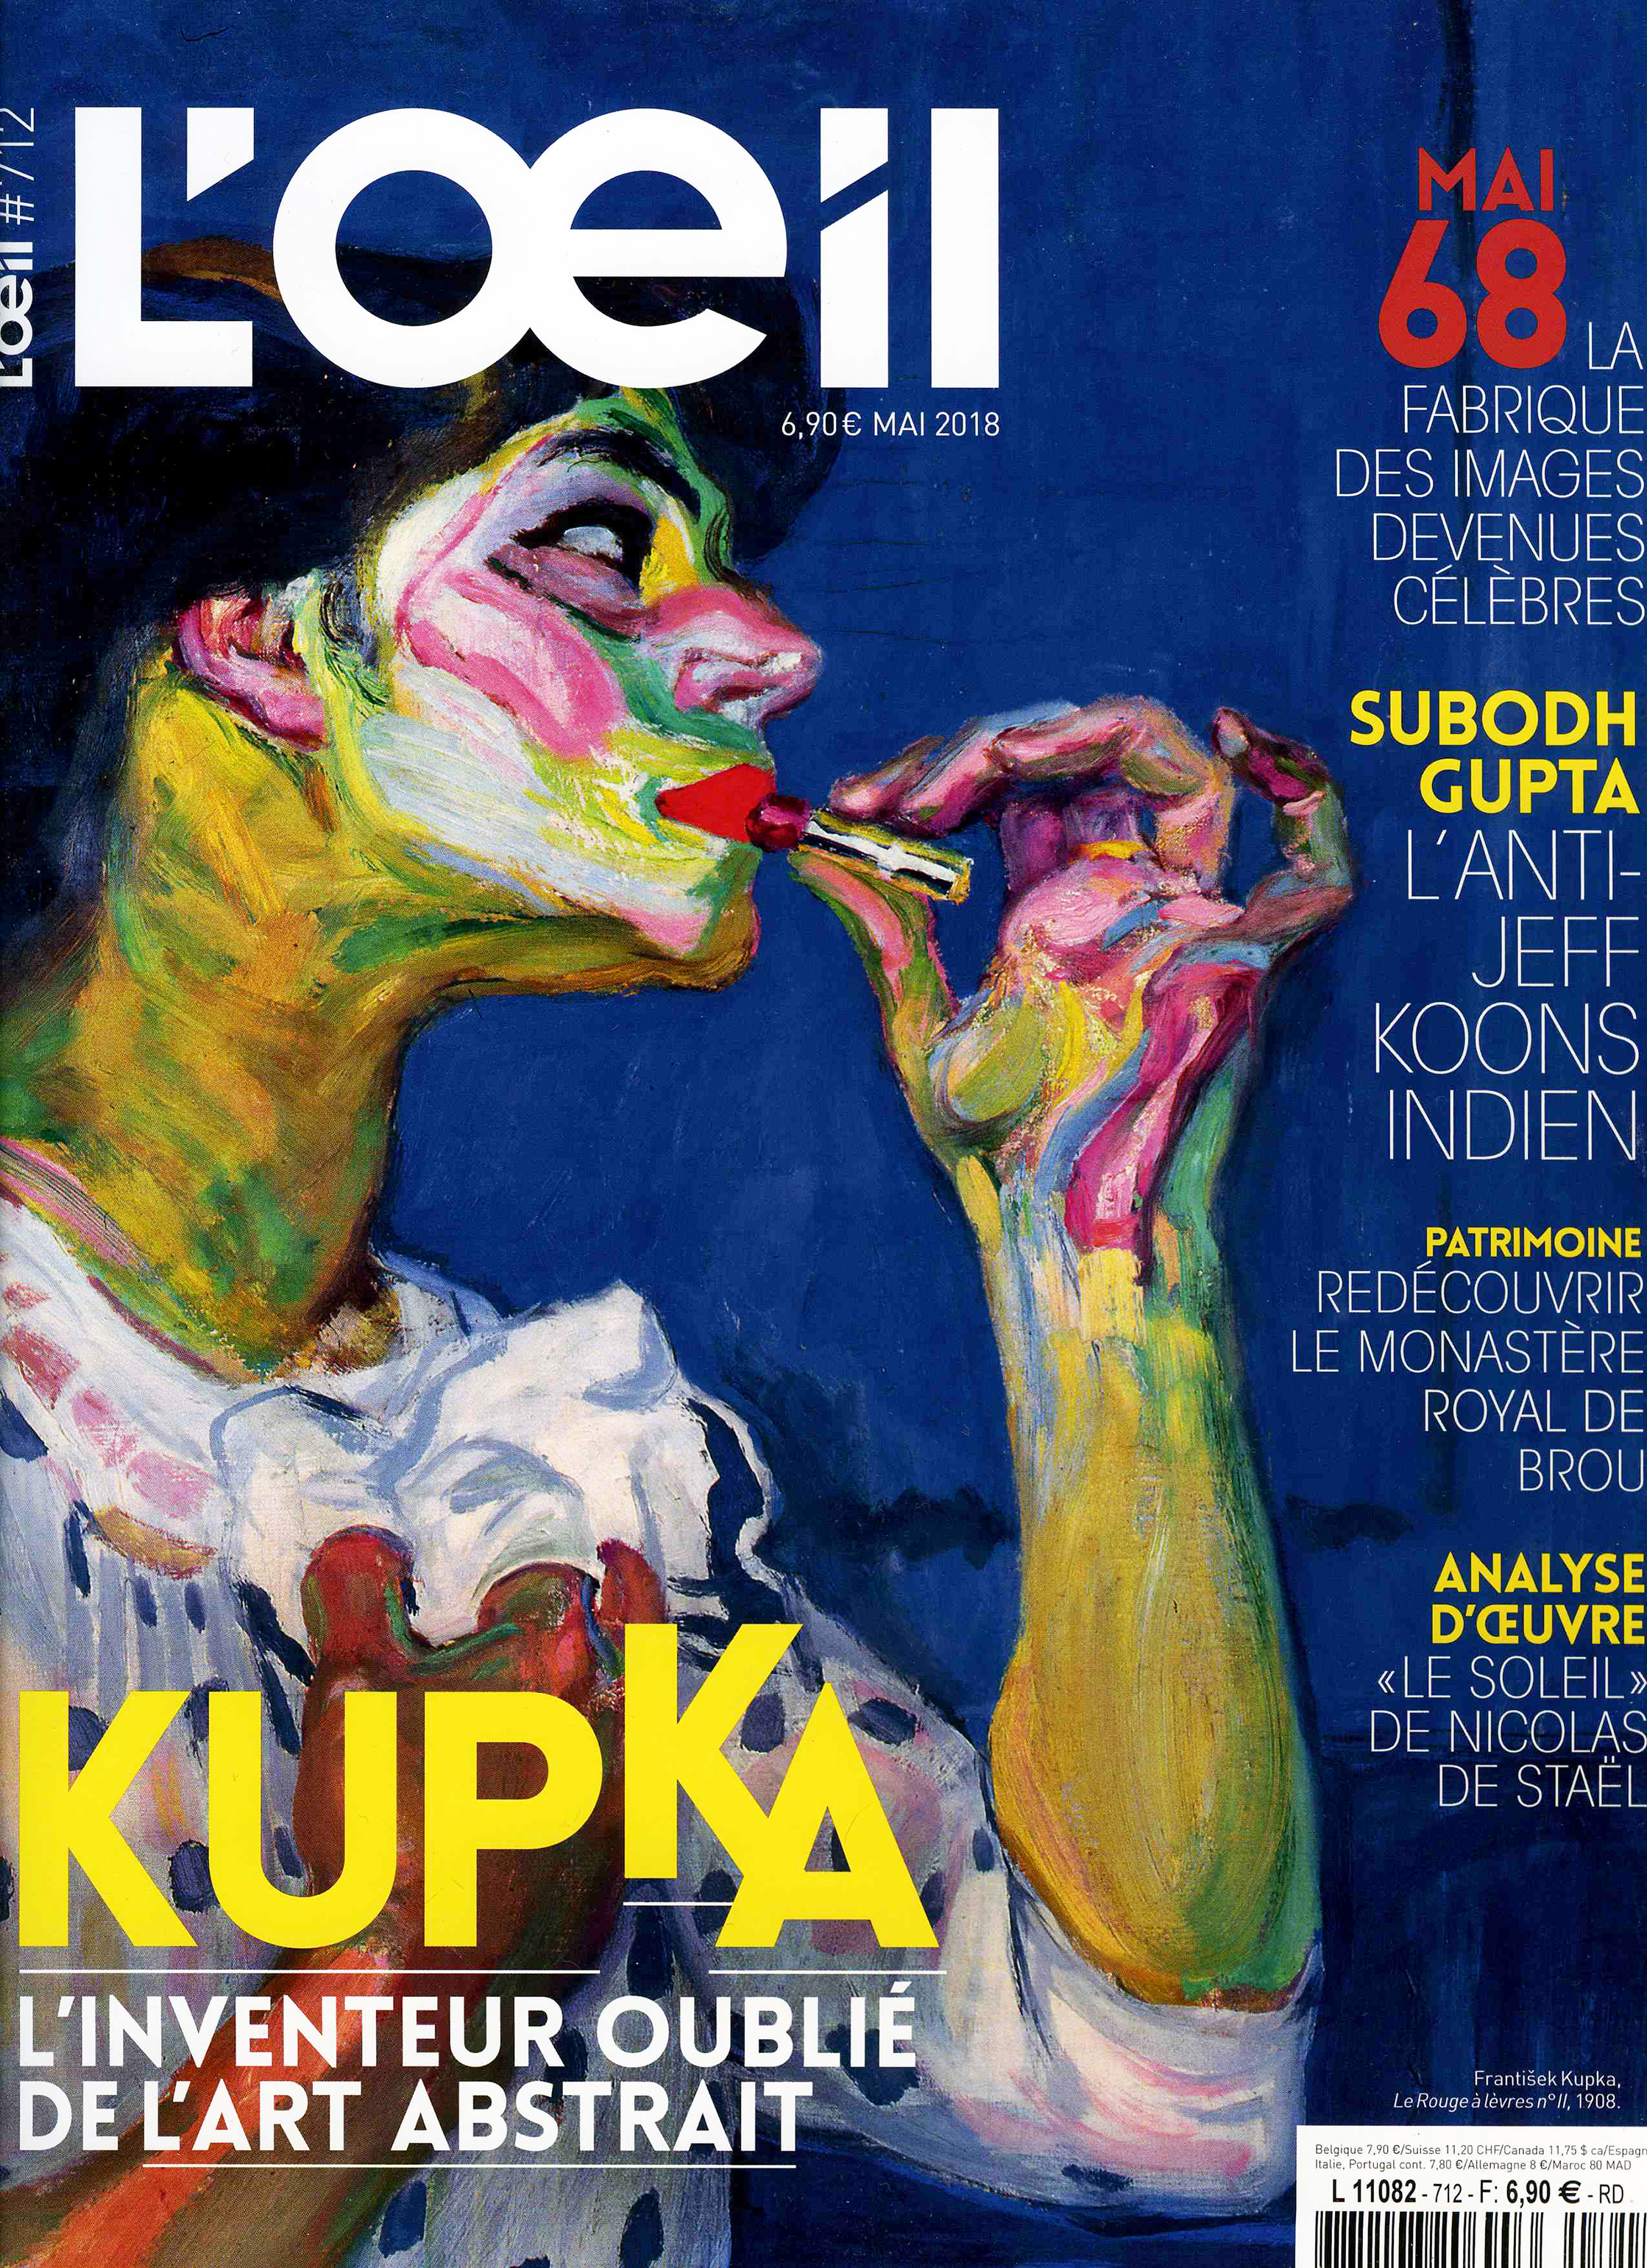 THE KID in L OEIL Magazine - May 2018 Print Issue - France - Pages 112 and 113 - Cover page